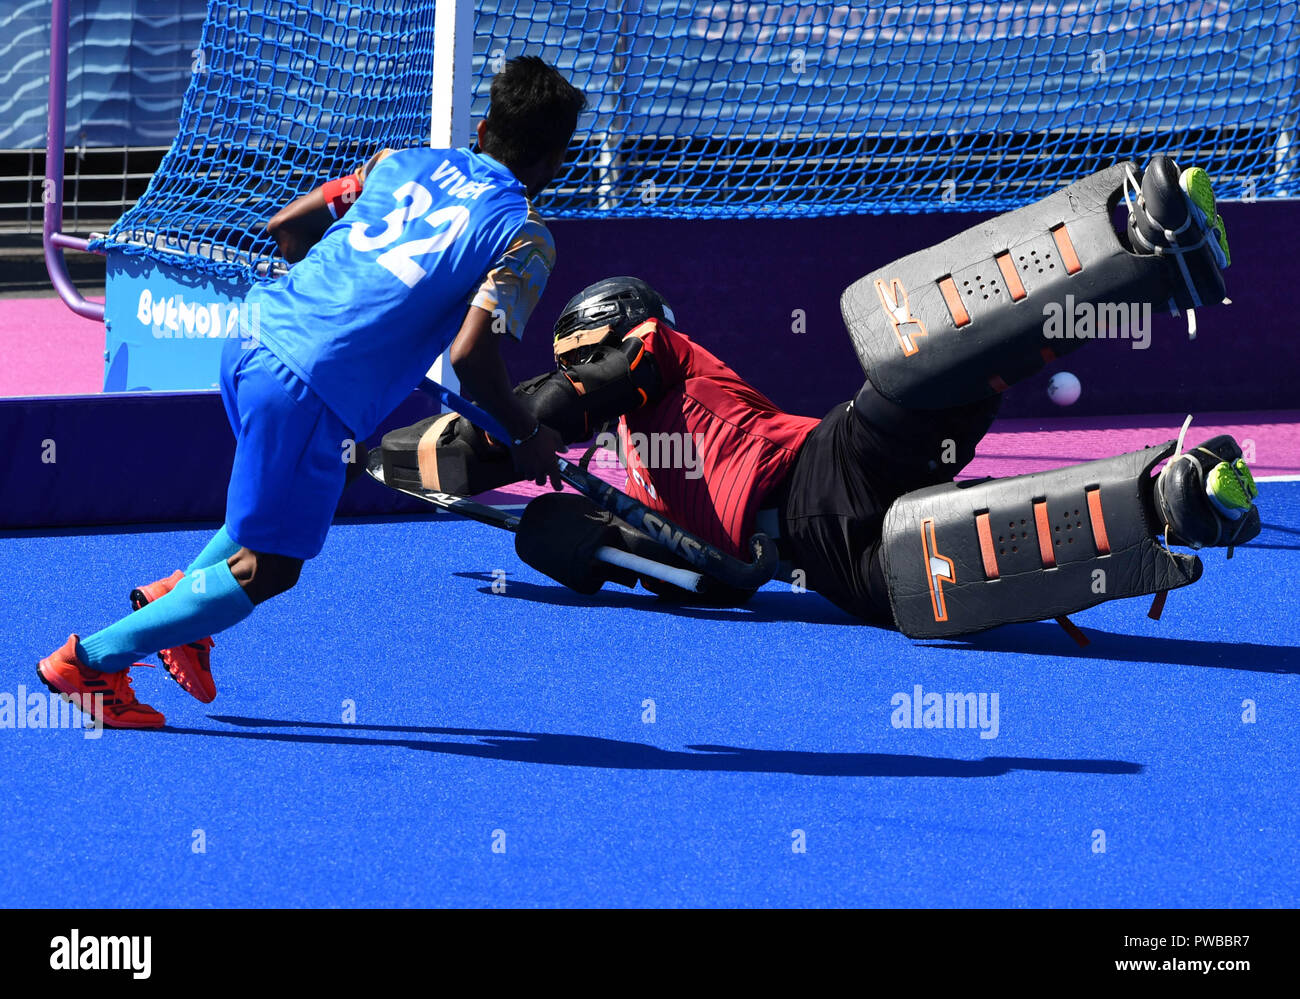 Buenos Aires, Argentina. 14th Oct, 2018. Vivek Sagar Prasad (L) of India shoots during the men's hockey5s final between Malaysia and India at the 2018 Summer Youth Olympic Games in Buenos Aires, Argentina, on Oct. 14, 2018. Malaysia won 4-2 to claim the title. Credit: He Changshan/Xinhua/Alamy Live News - Stock Image